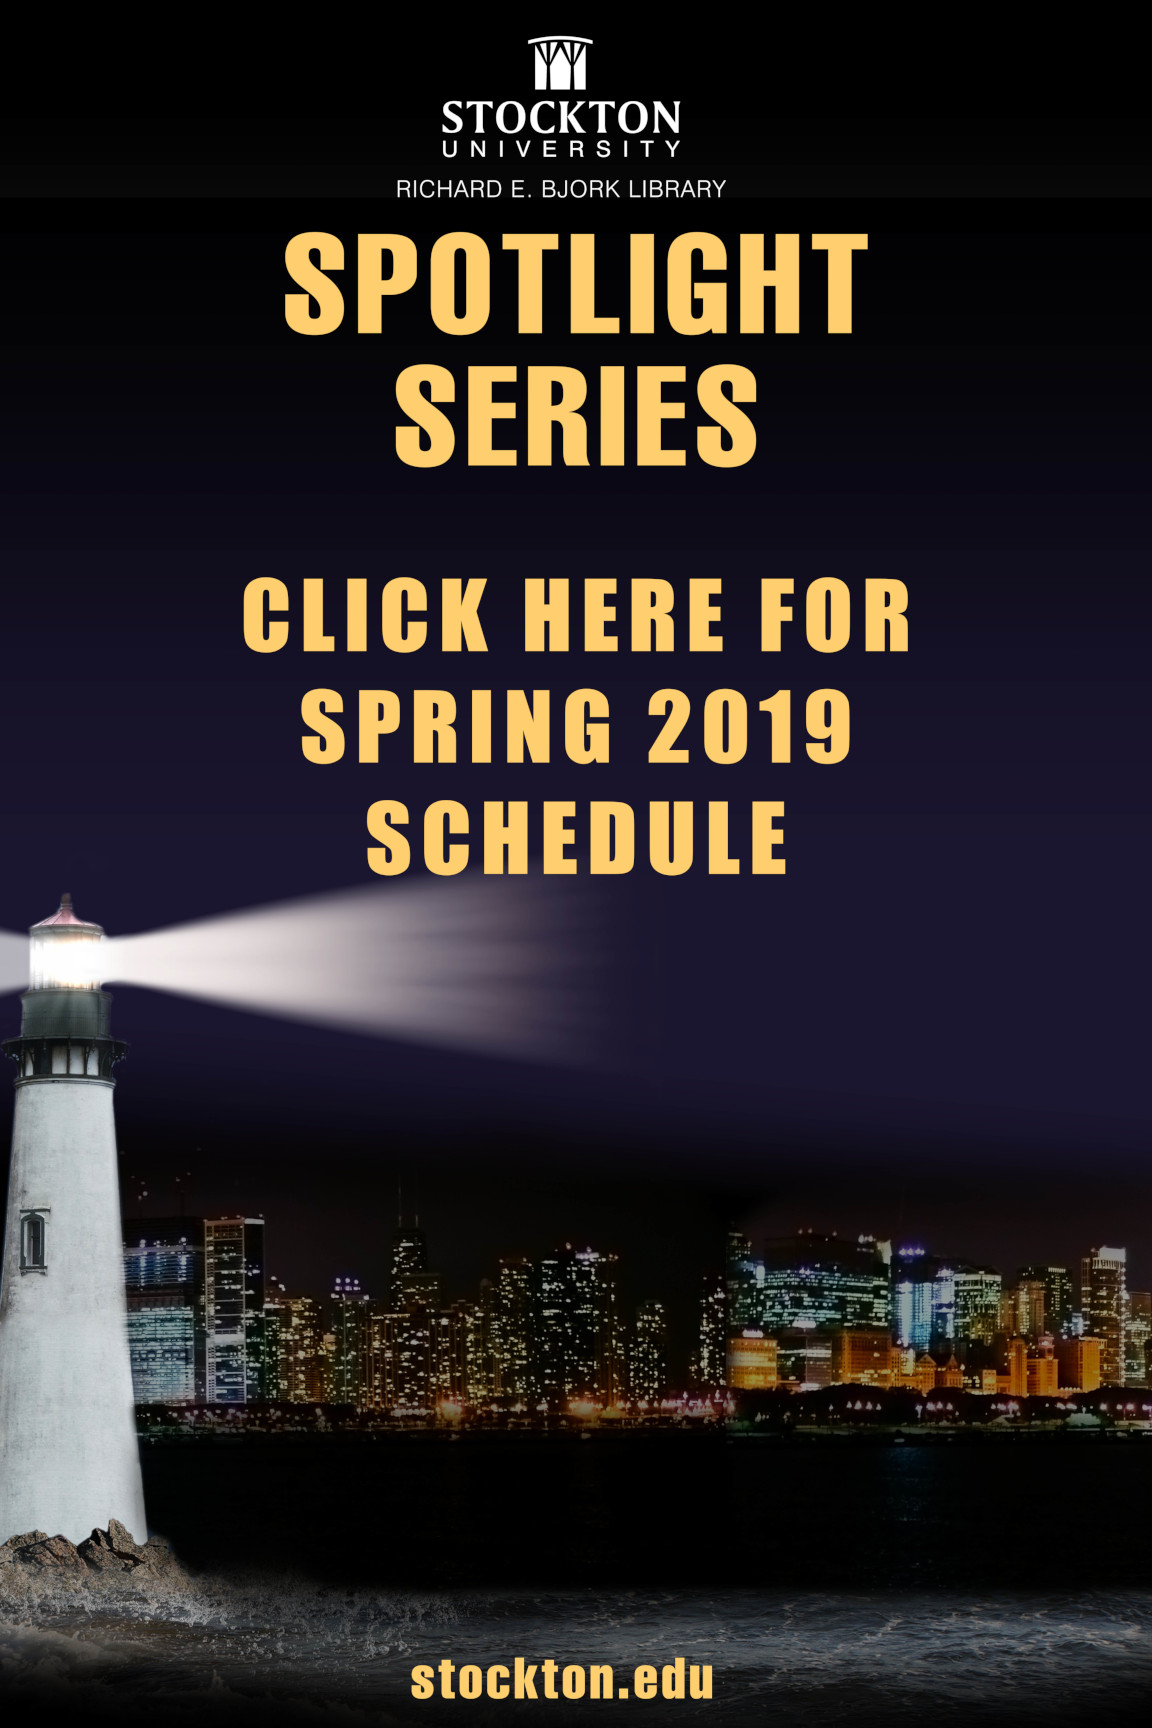 Link to Library Spotlight Series schedule